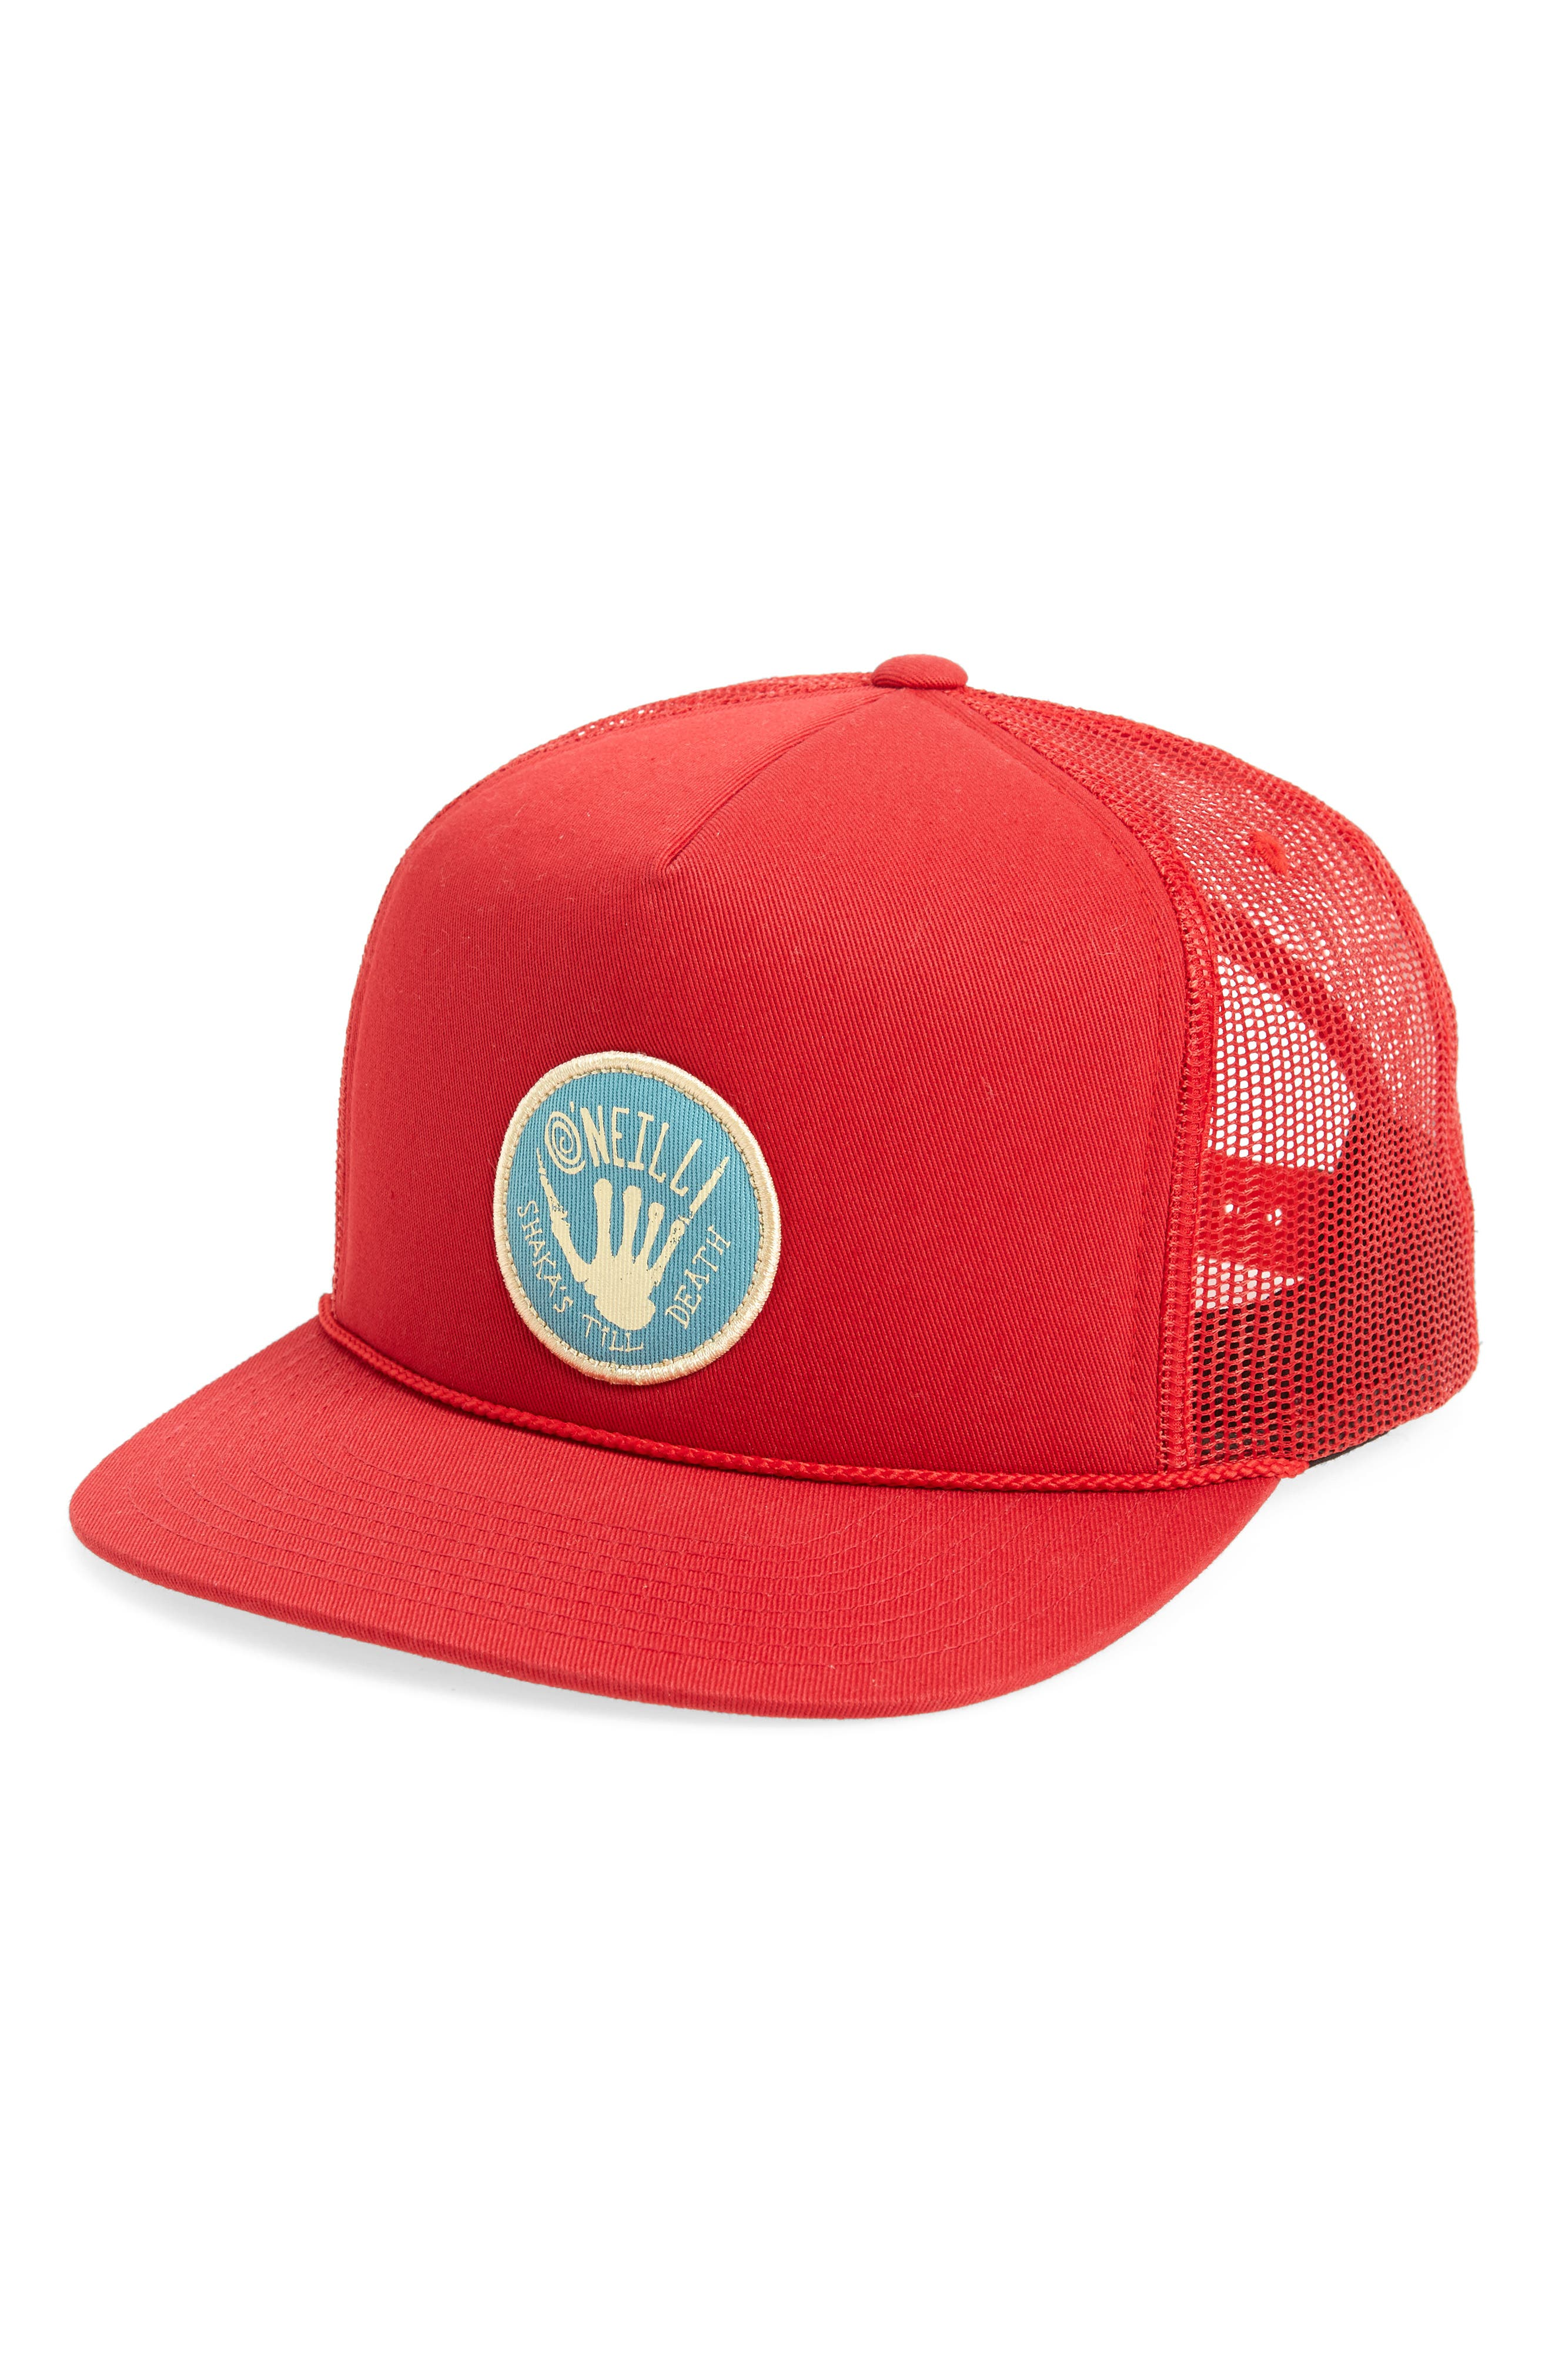 Shaka till Death Trucker Hat,                             Main thumbnail 1, color,                             600